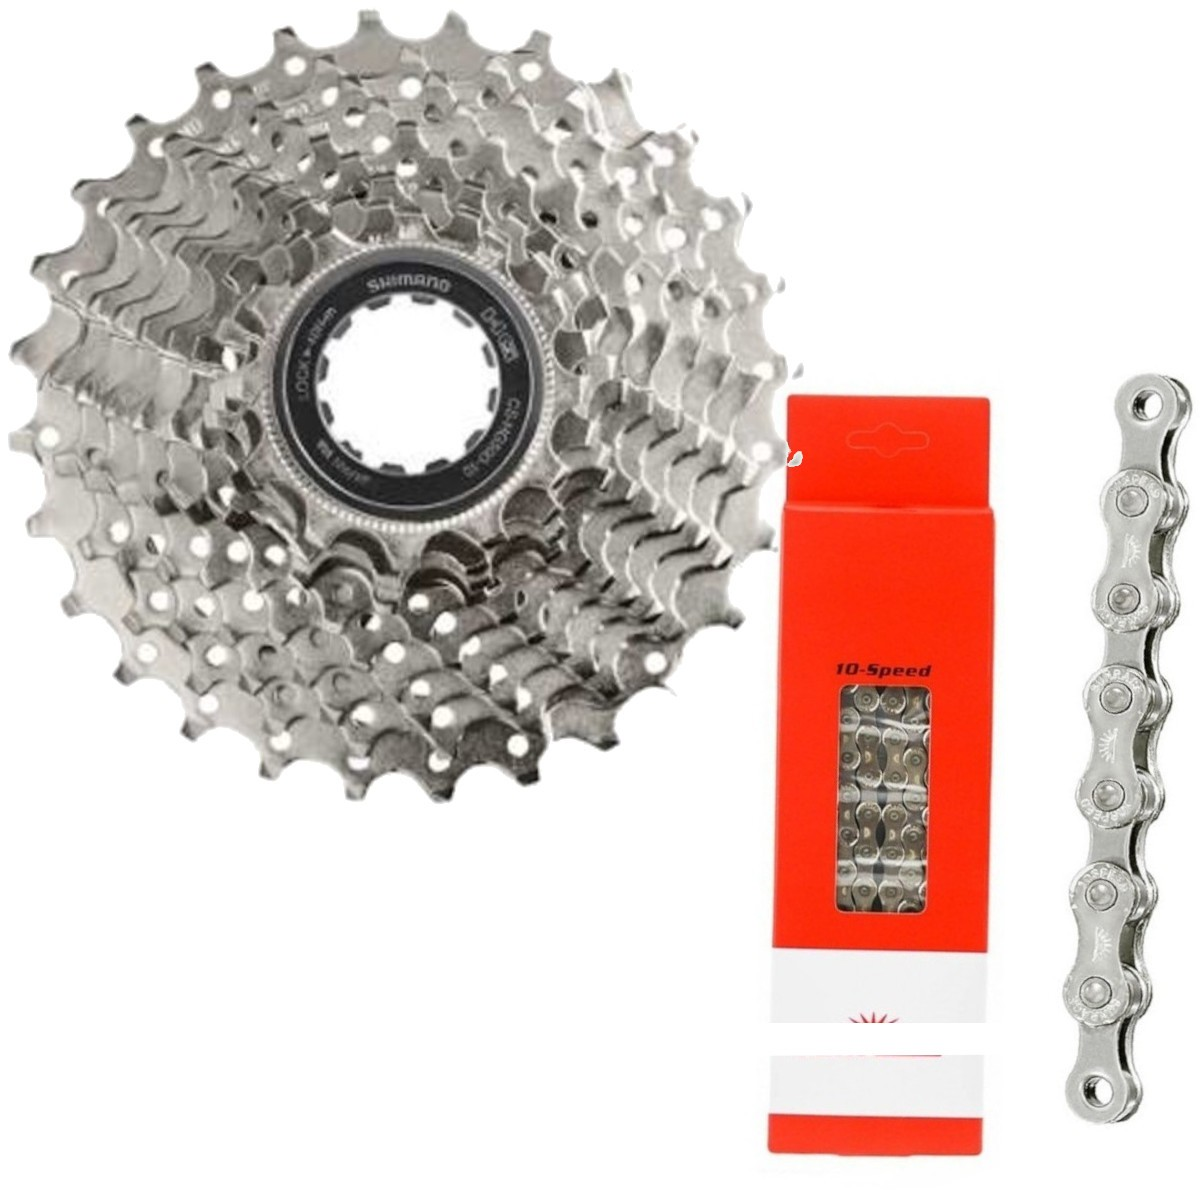 Cassete Speed Shimano Cs-Hg500-10 12-28d 10v + Corrente 10v